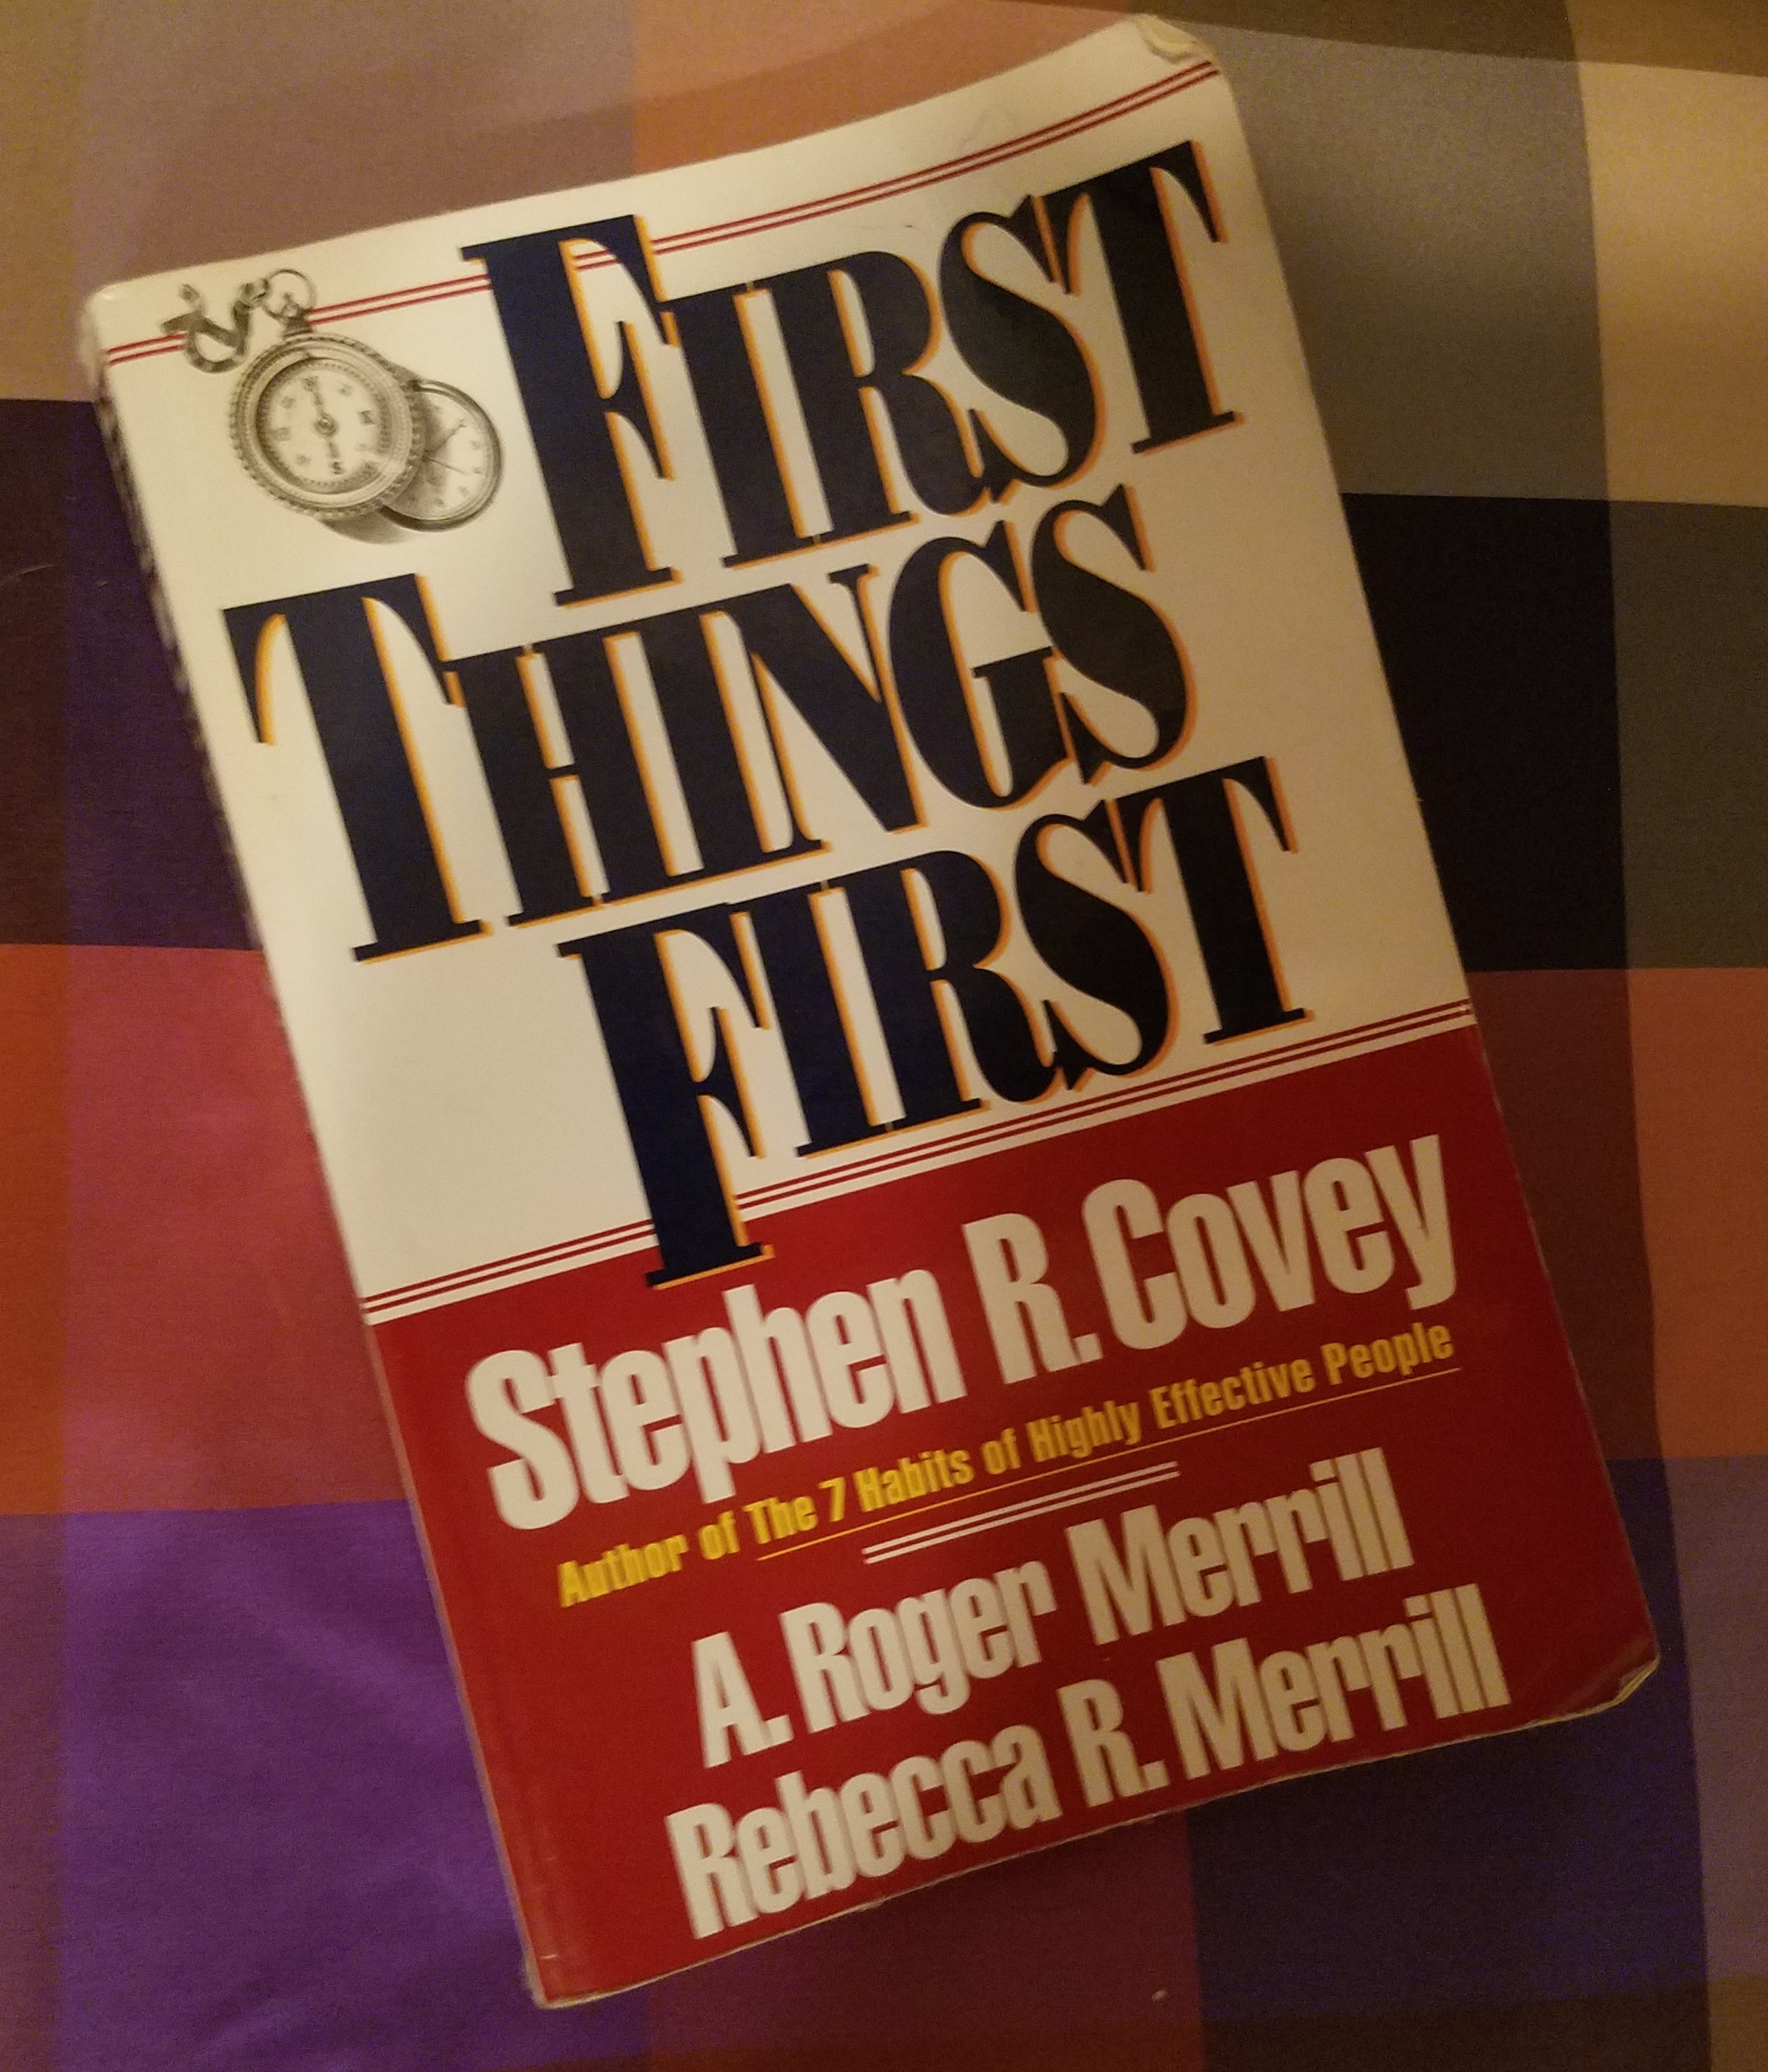 Lessons Learned First Things First By Stephen Covey